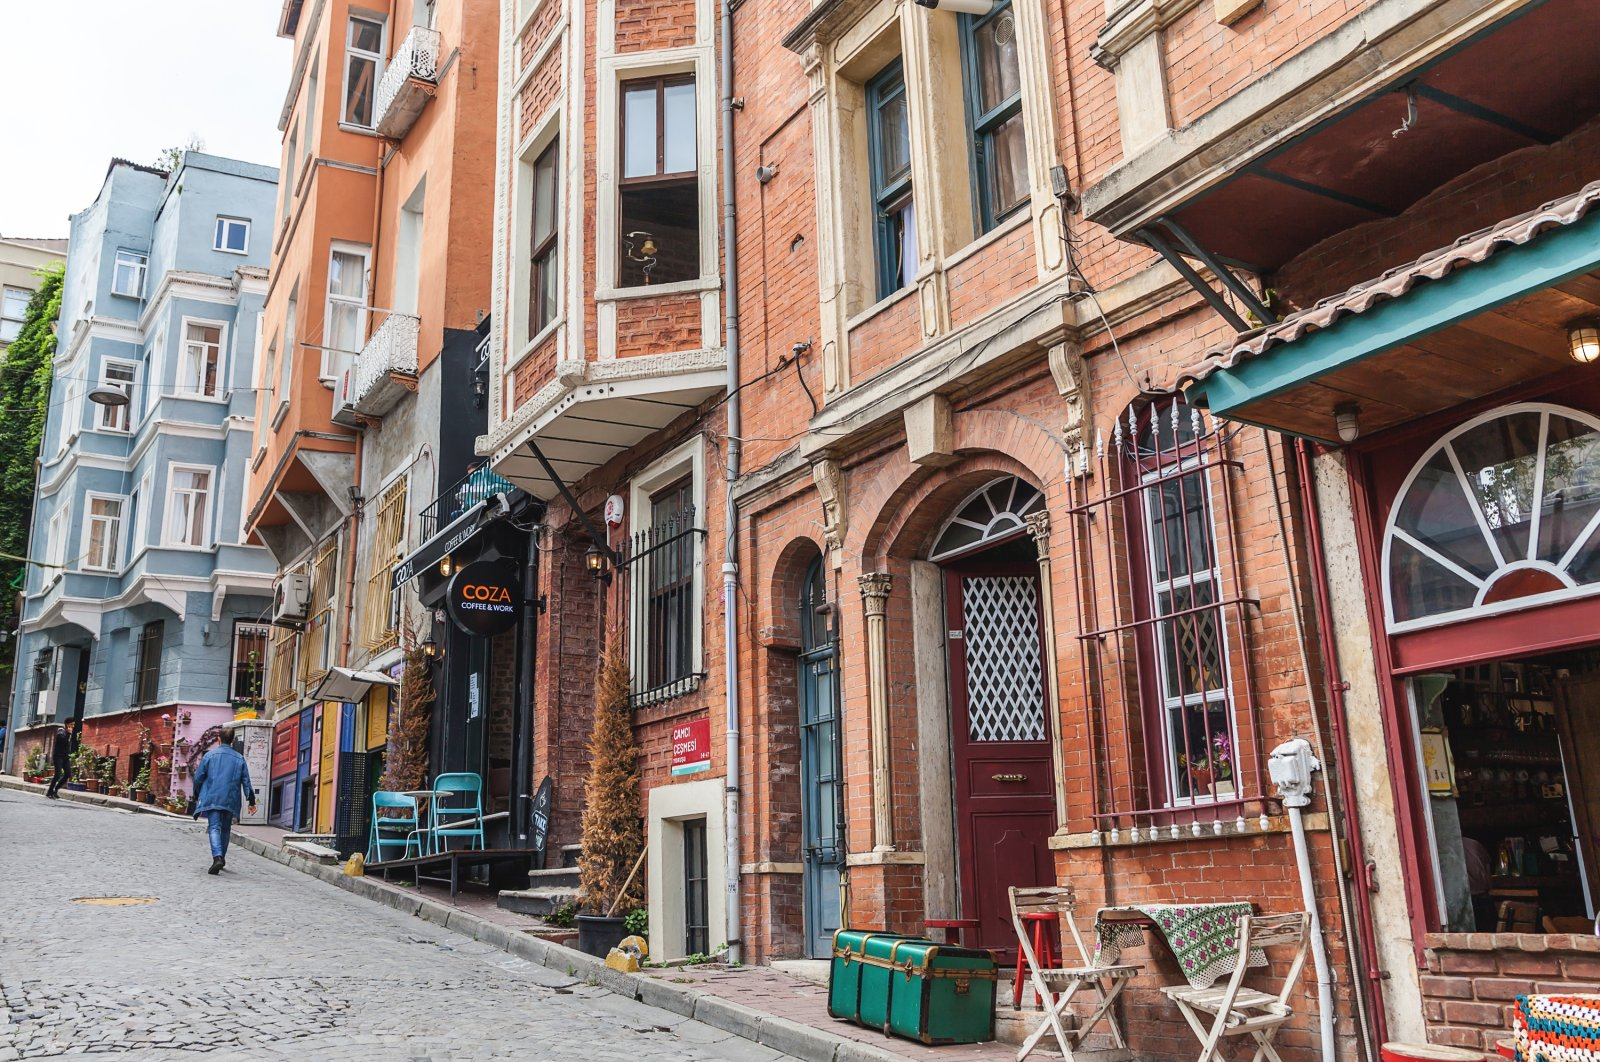 Streets are lined with stores and restaurants in the old quarter of Balat in Istanbul's Fatih district, Oct. 3, 2018. (Shutterstock Photo)